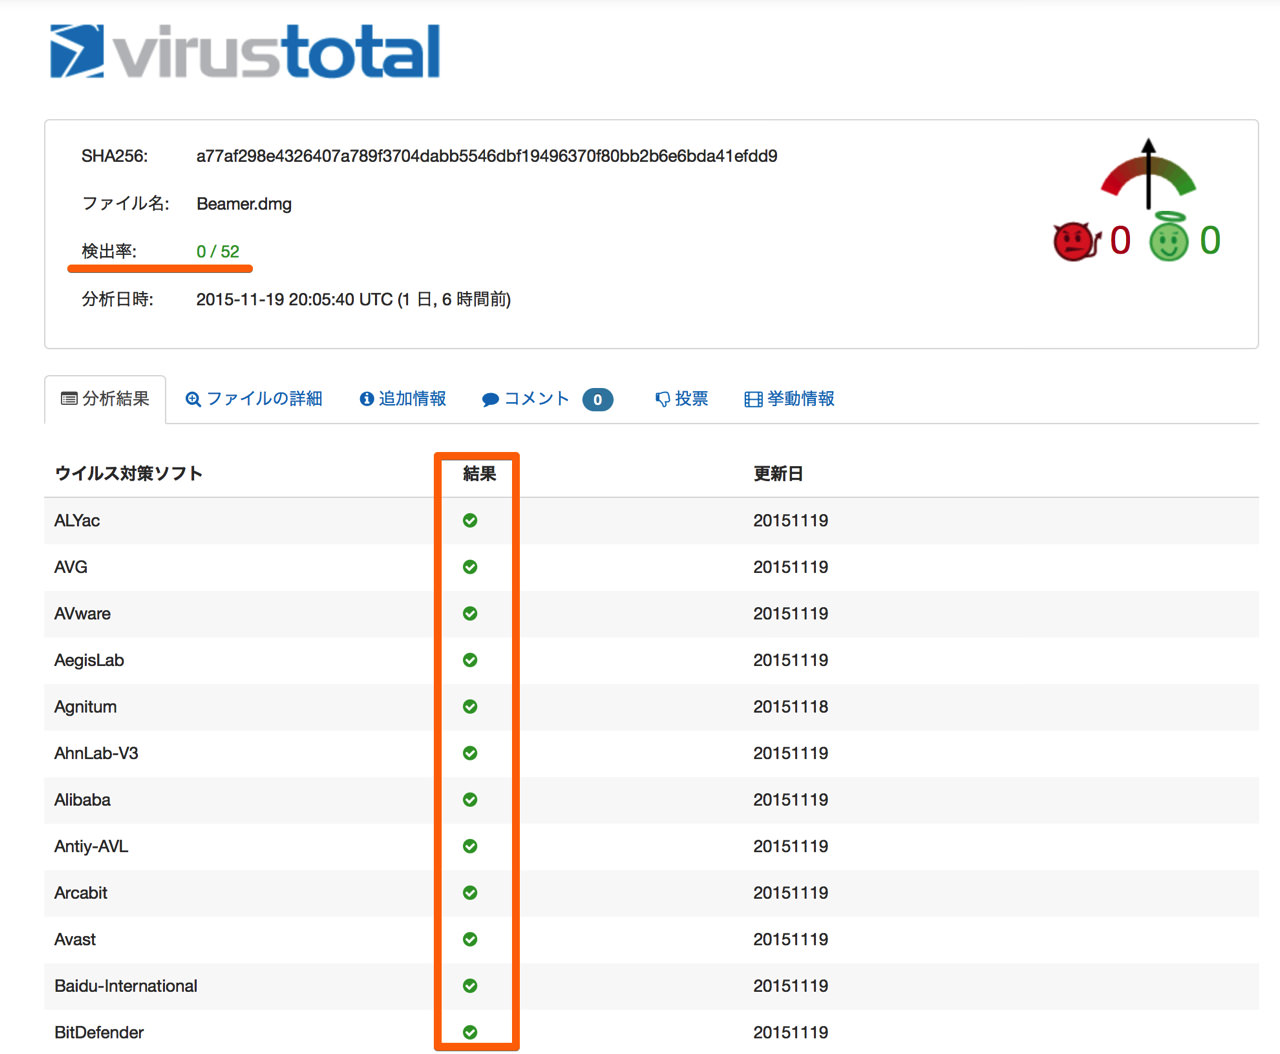 Virus total corresponding to malware detection of mac2